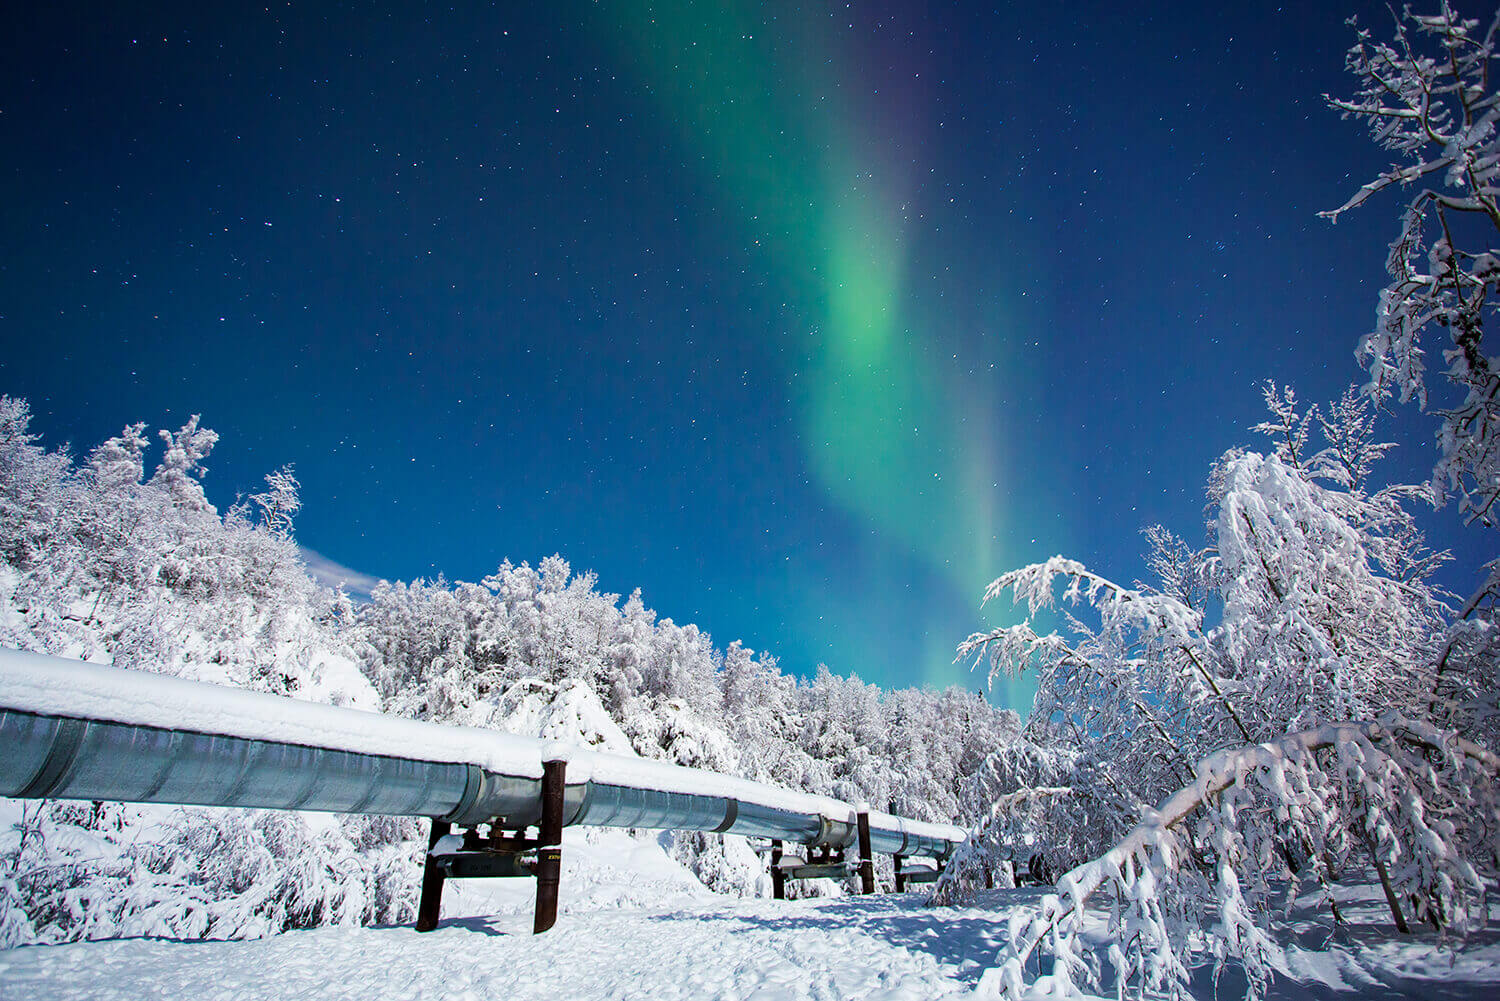 Searching for Northern Lights in Fairbanks, Alaska